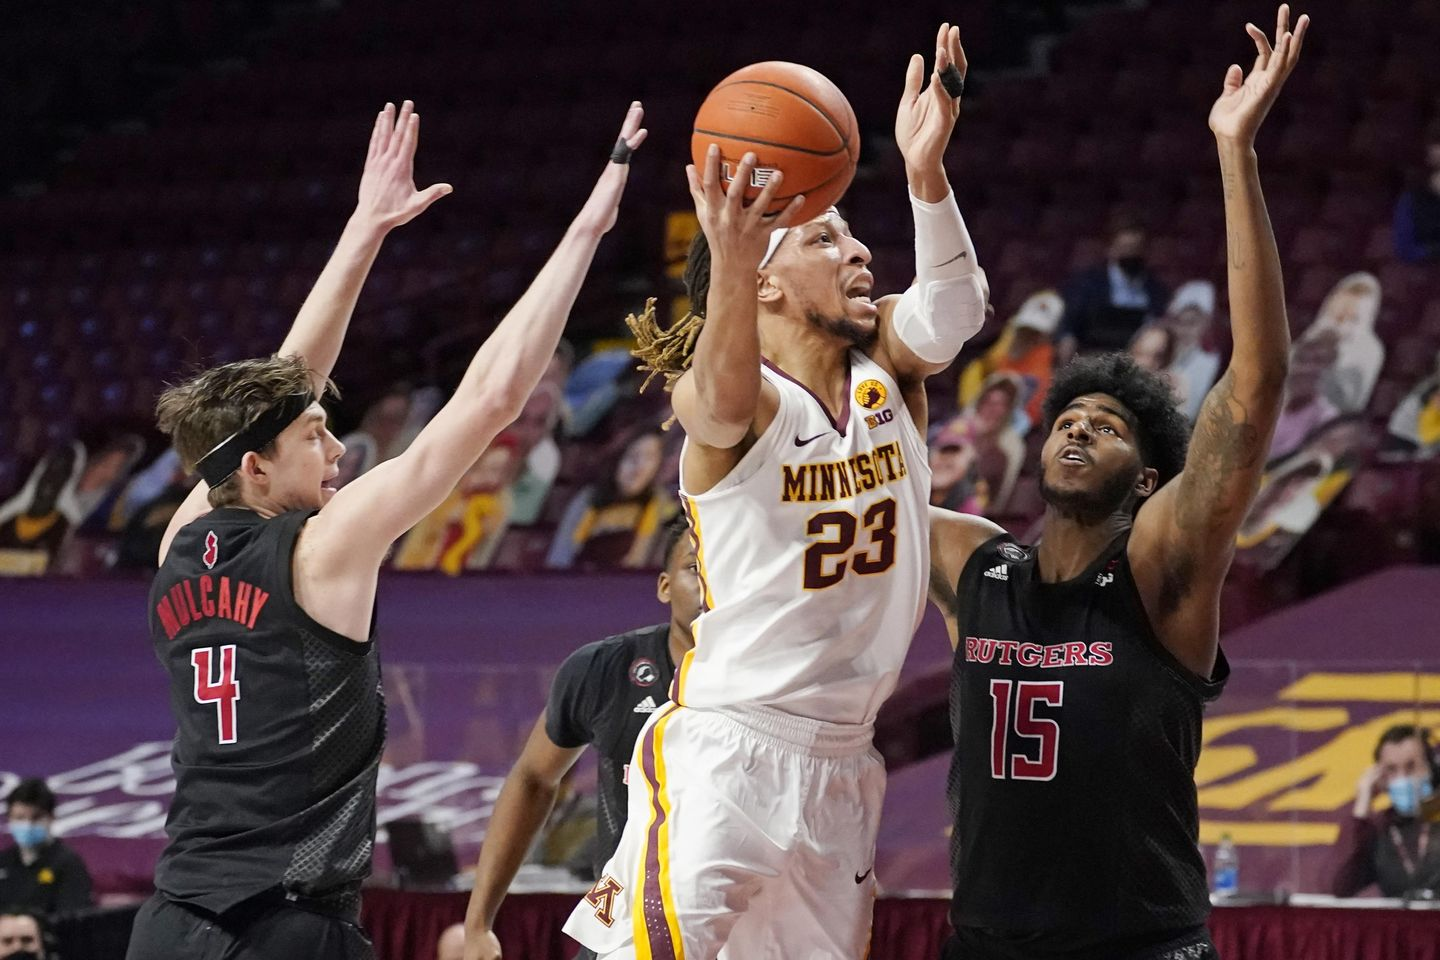 Young's 23 points leads Rutgers past Minnesota 77-70 in OT